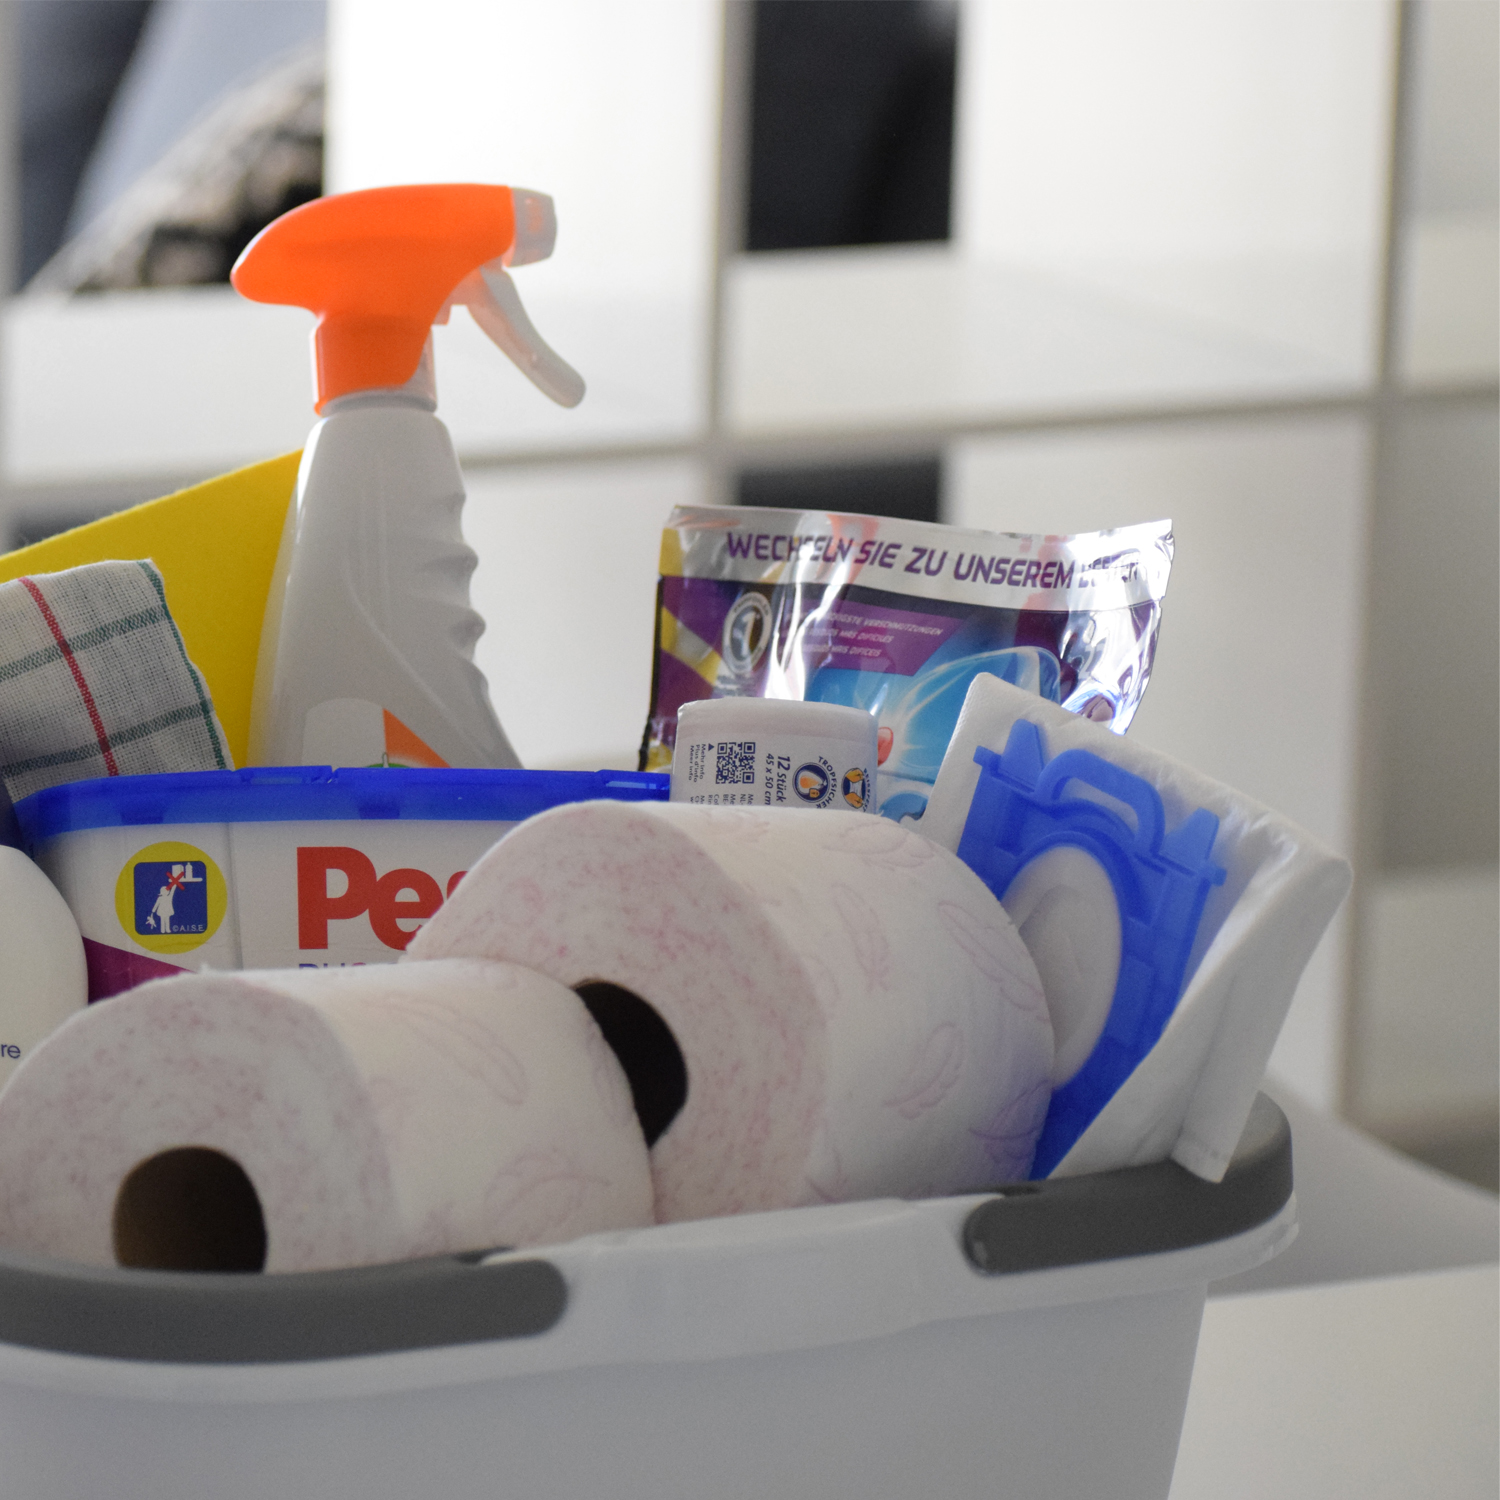 10 most overlooked cleaning spots to keep in mind when checking out